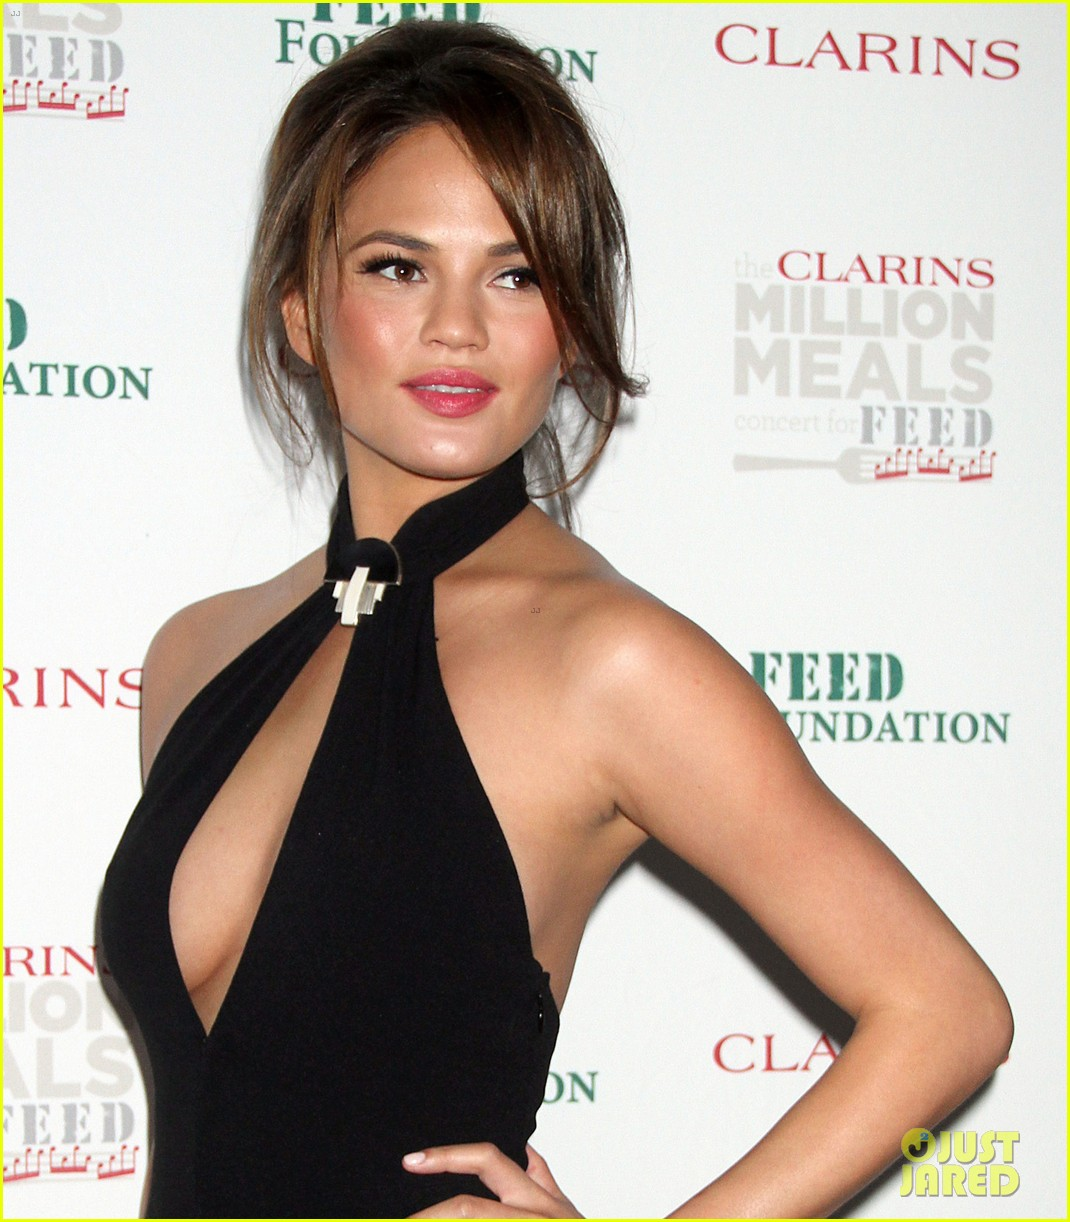 john legend chrissy teigen clarins million meals concert 10